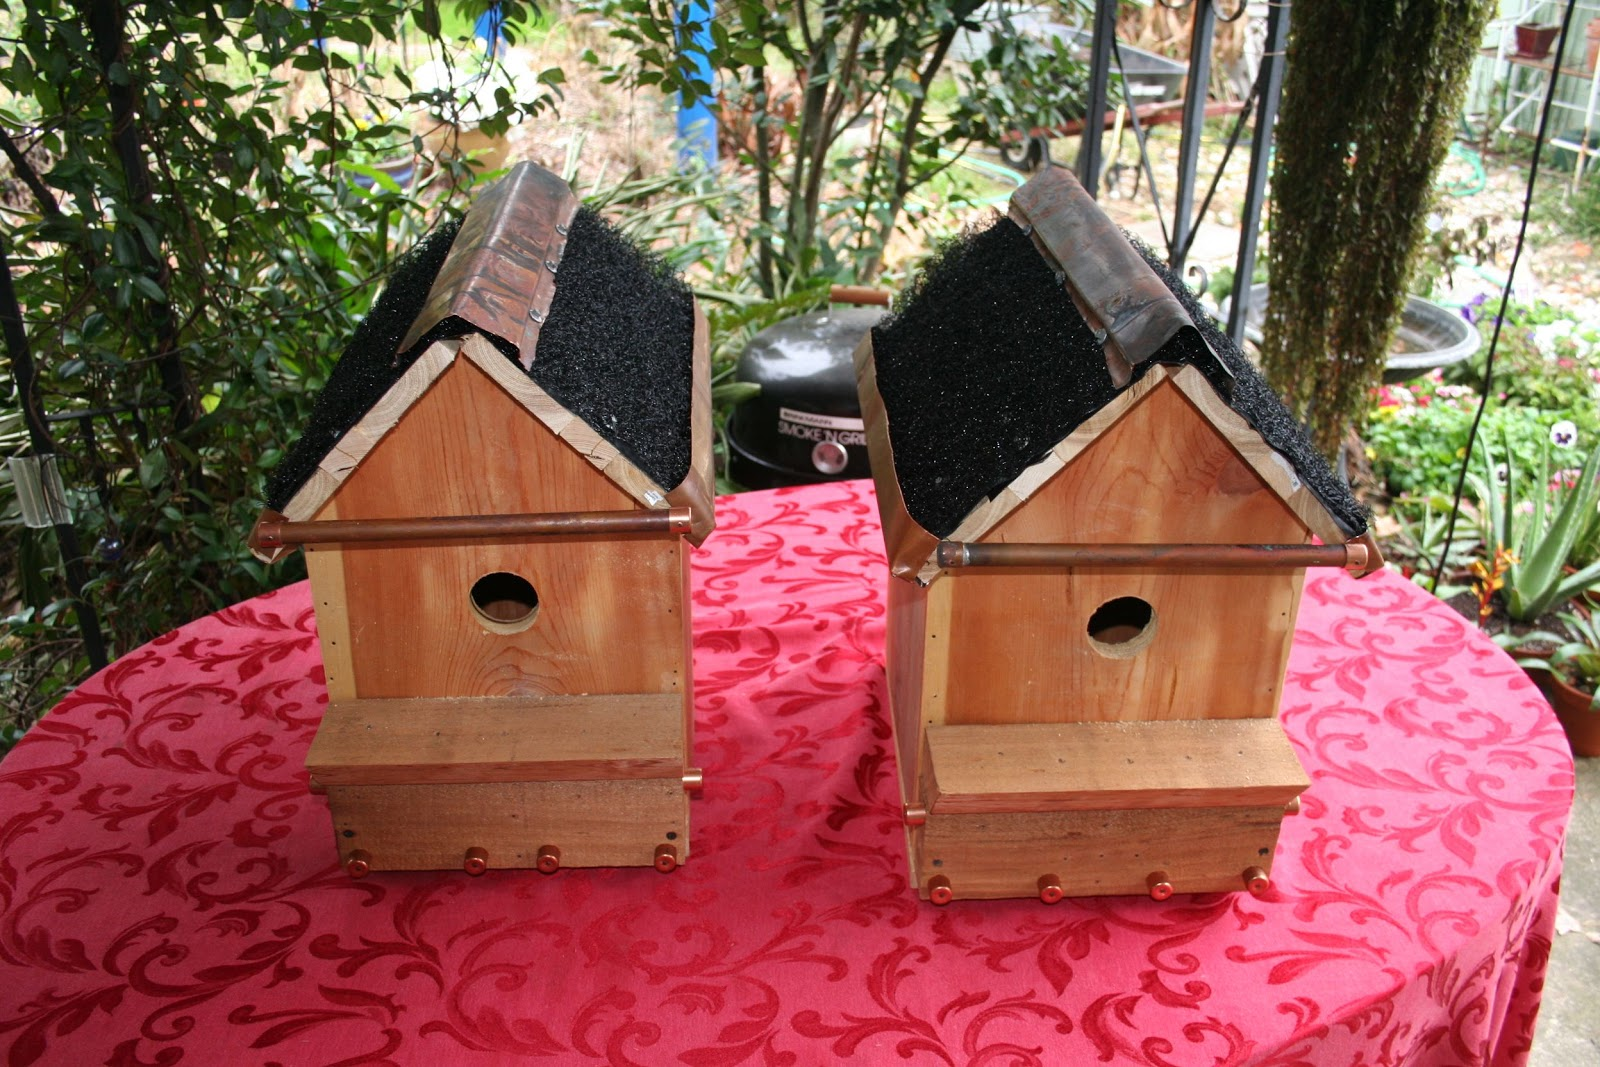 Kevin Songer Green Roofs For Birdhouses Doghouses And